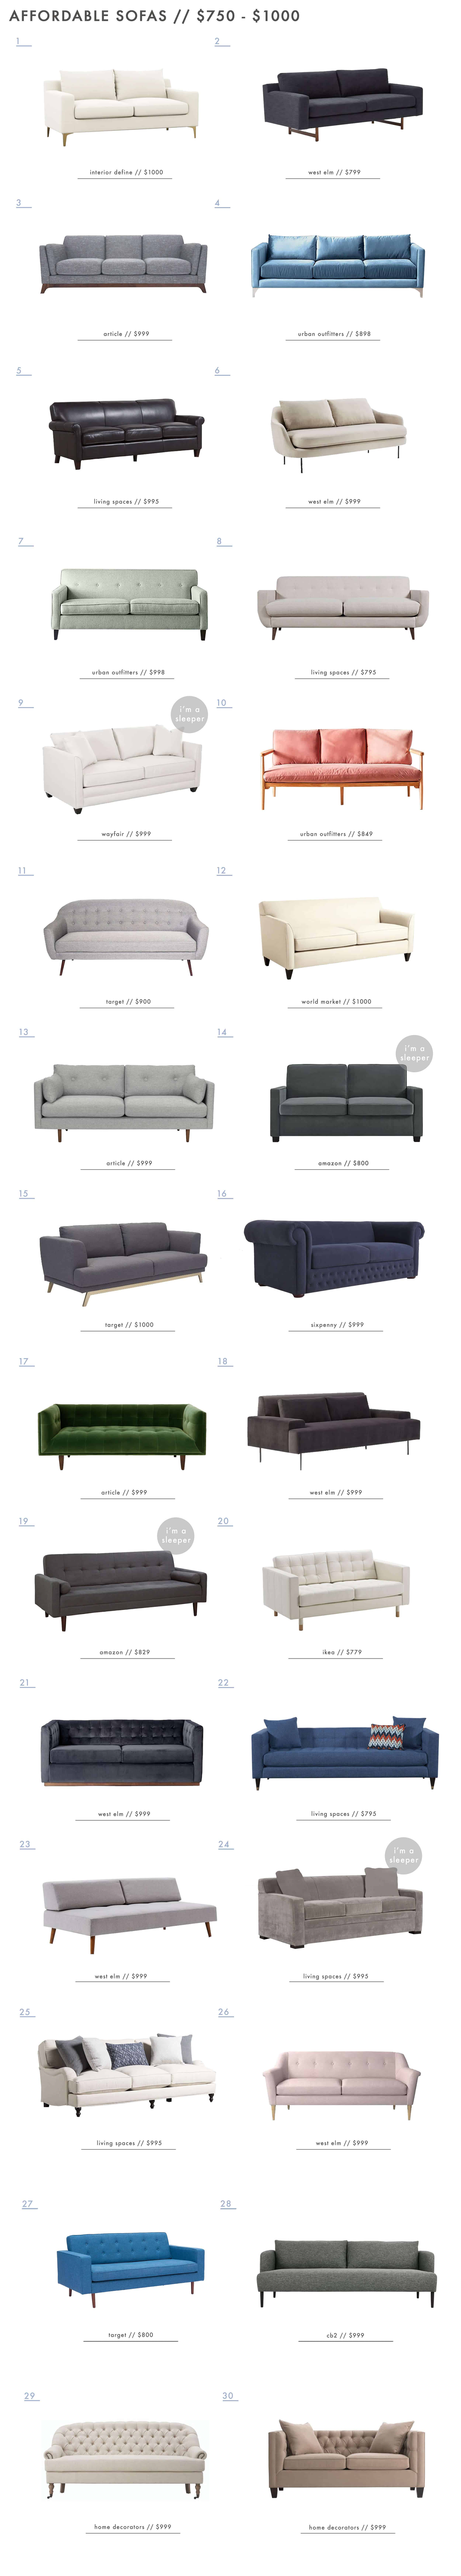 Emily-Henderson_Afforfable-Sofas_Roundup_750-to-10001